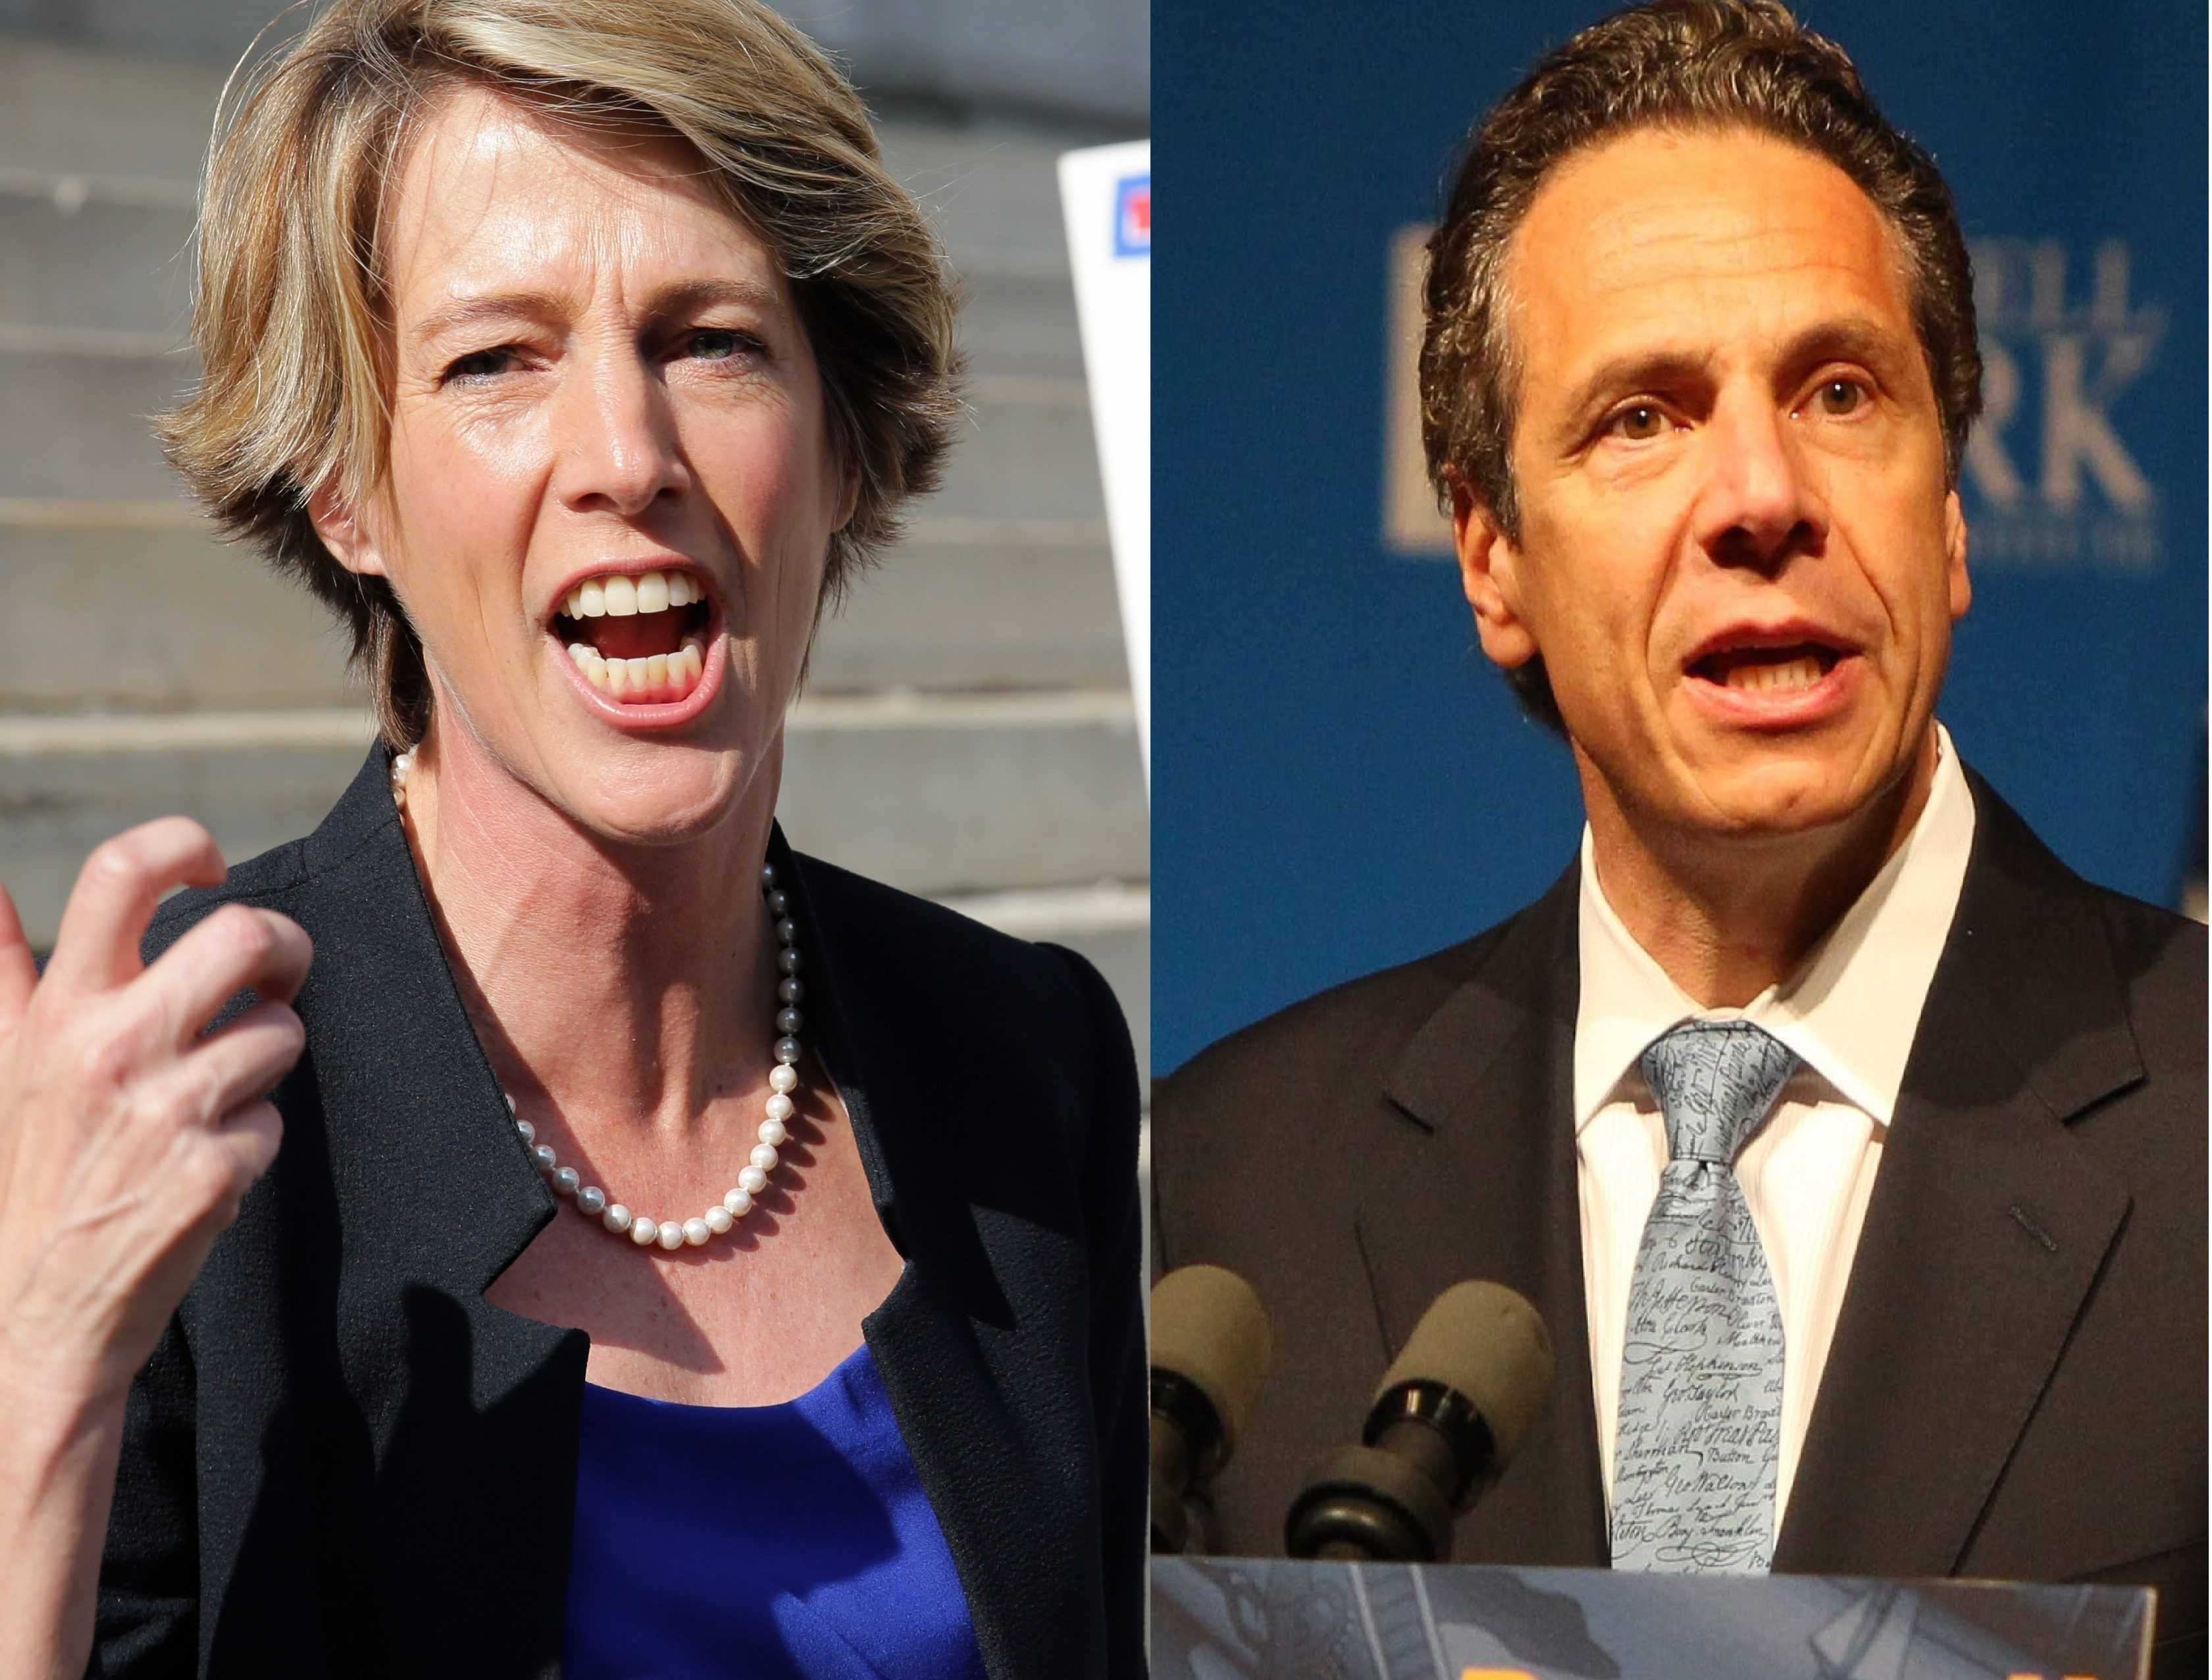 Fordham University law professor and liberal activist Zephyr Teachout is opposing Gov. Andrew Cuomo in the Deocratic gubernatorial primary on Sept. 9.